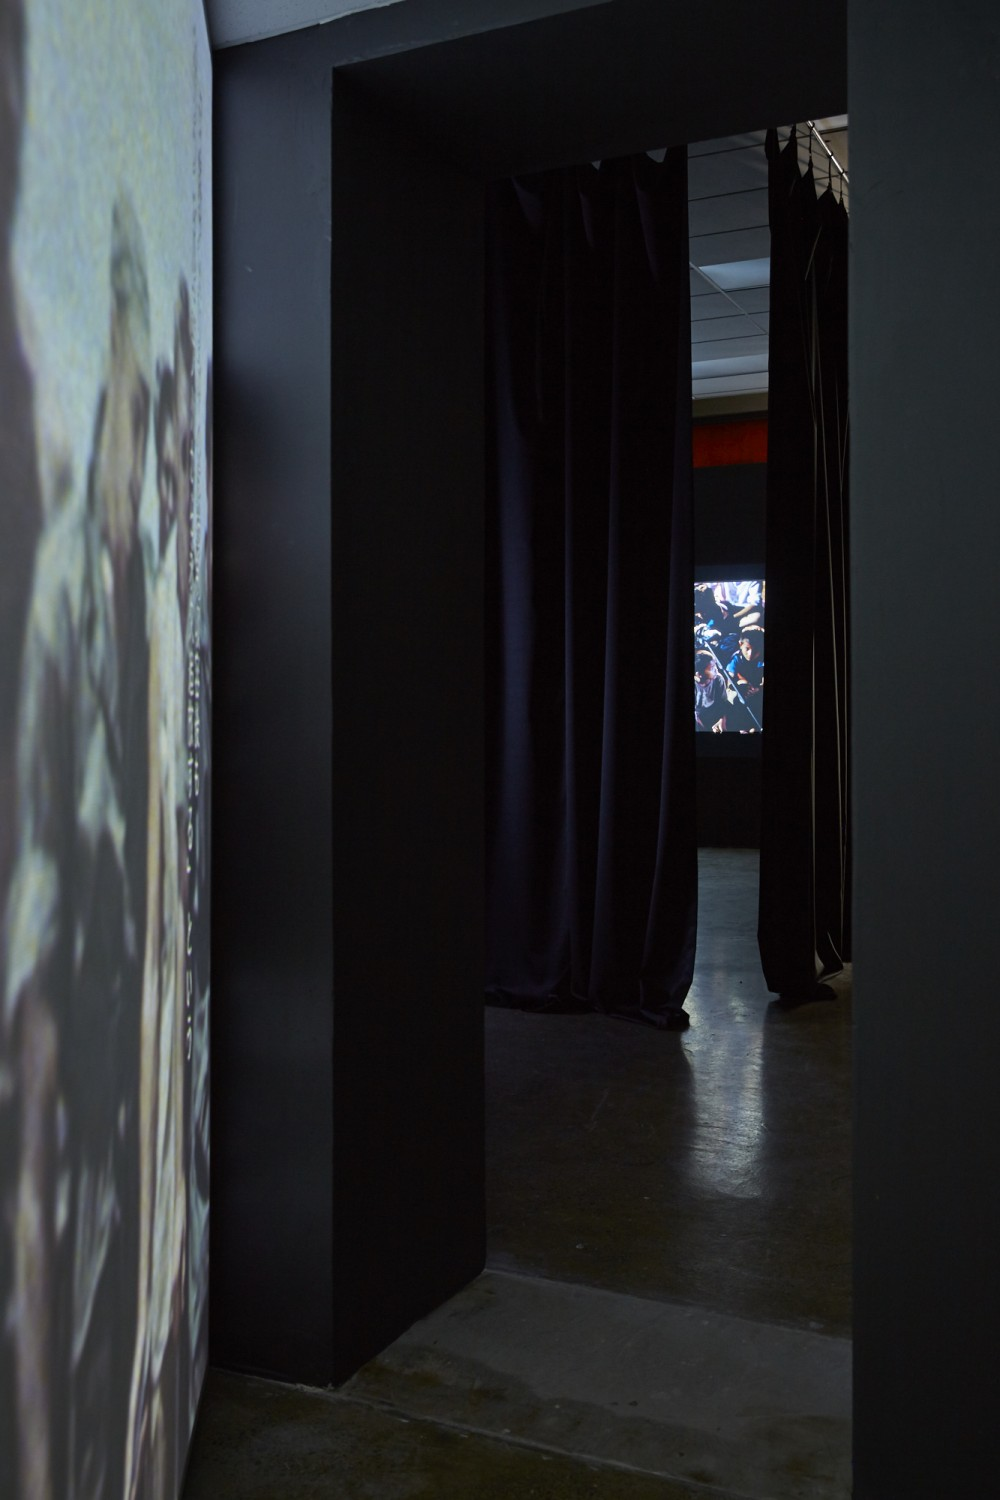 *Ex-Ante* October 27 - December 22  Installation View  Photograph by Sam Hartnett